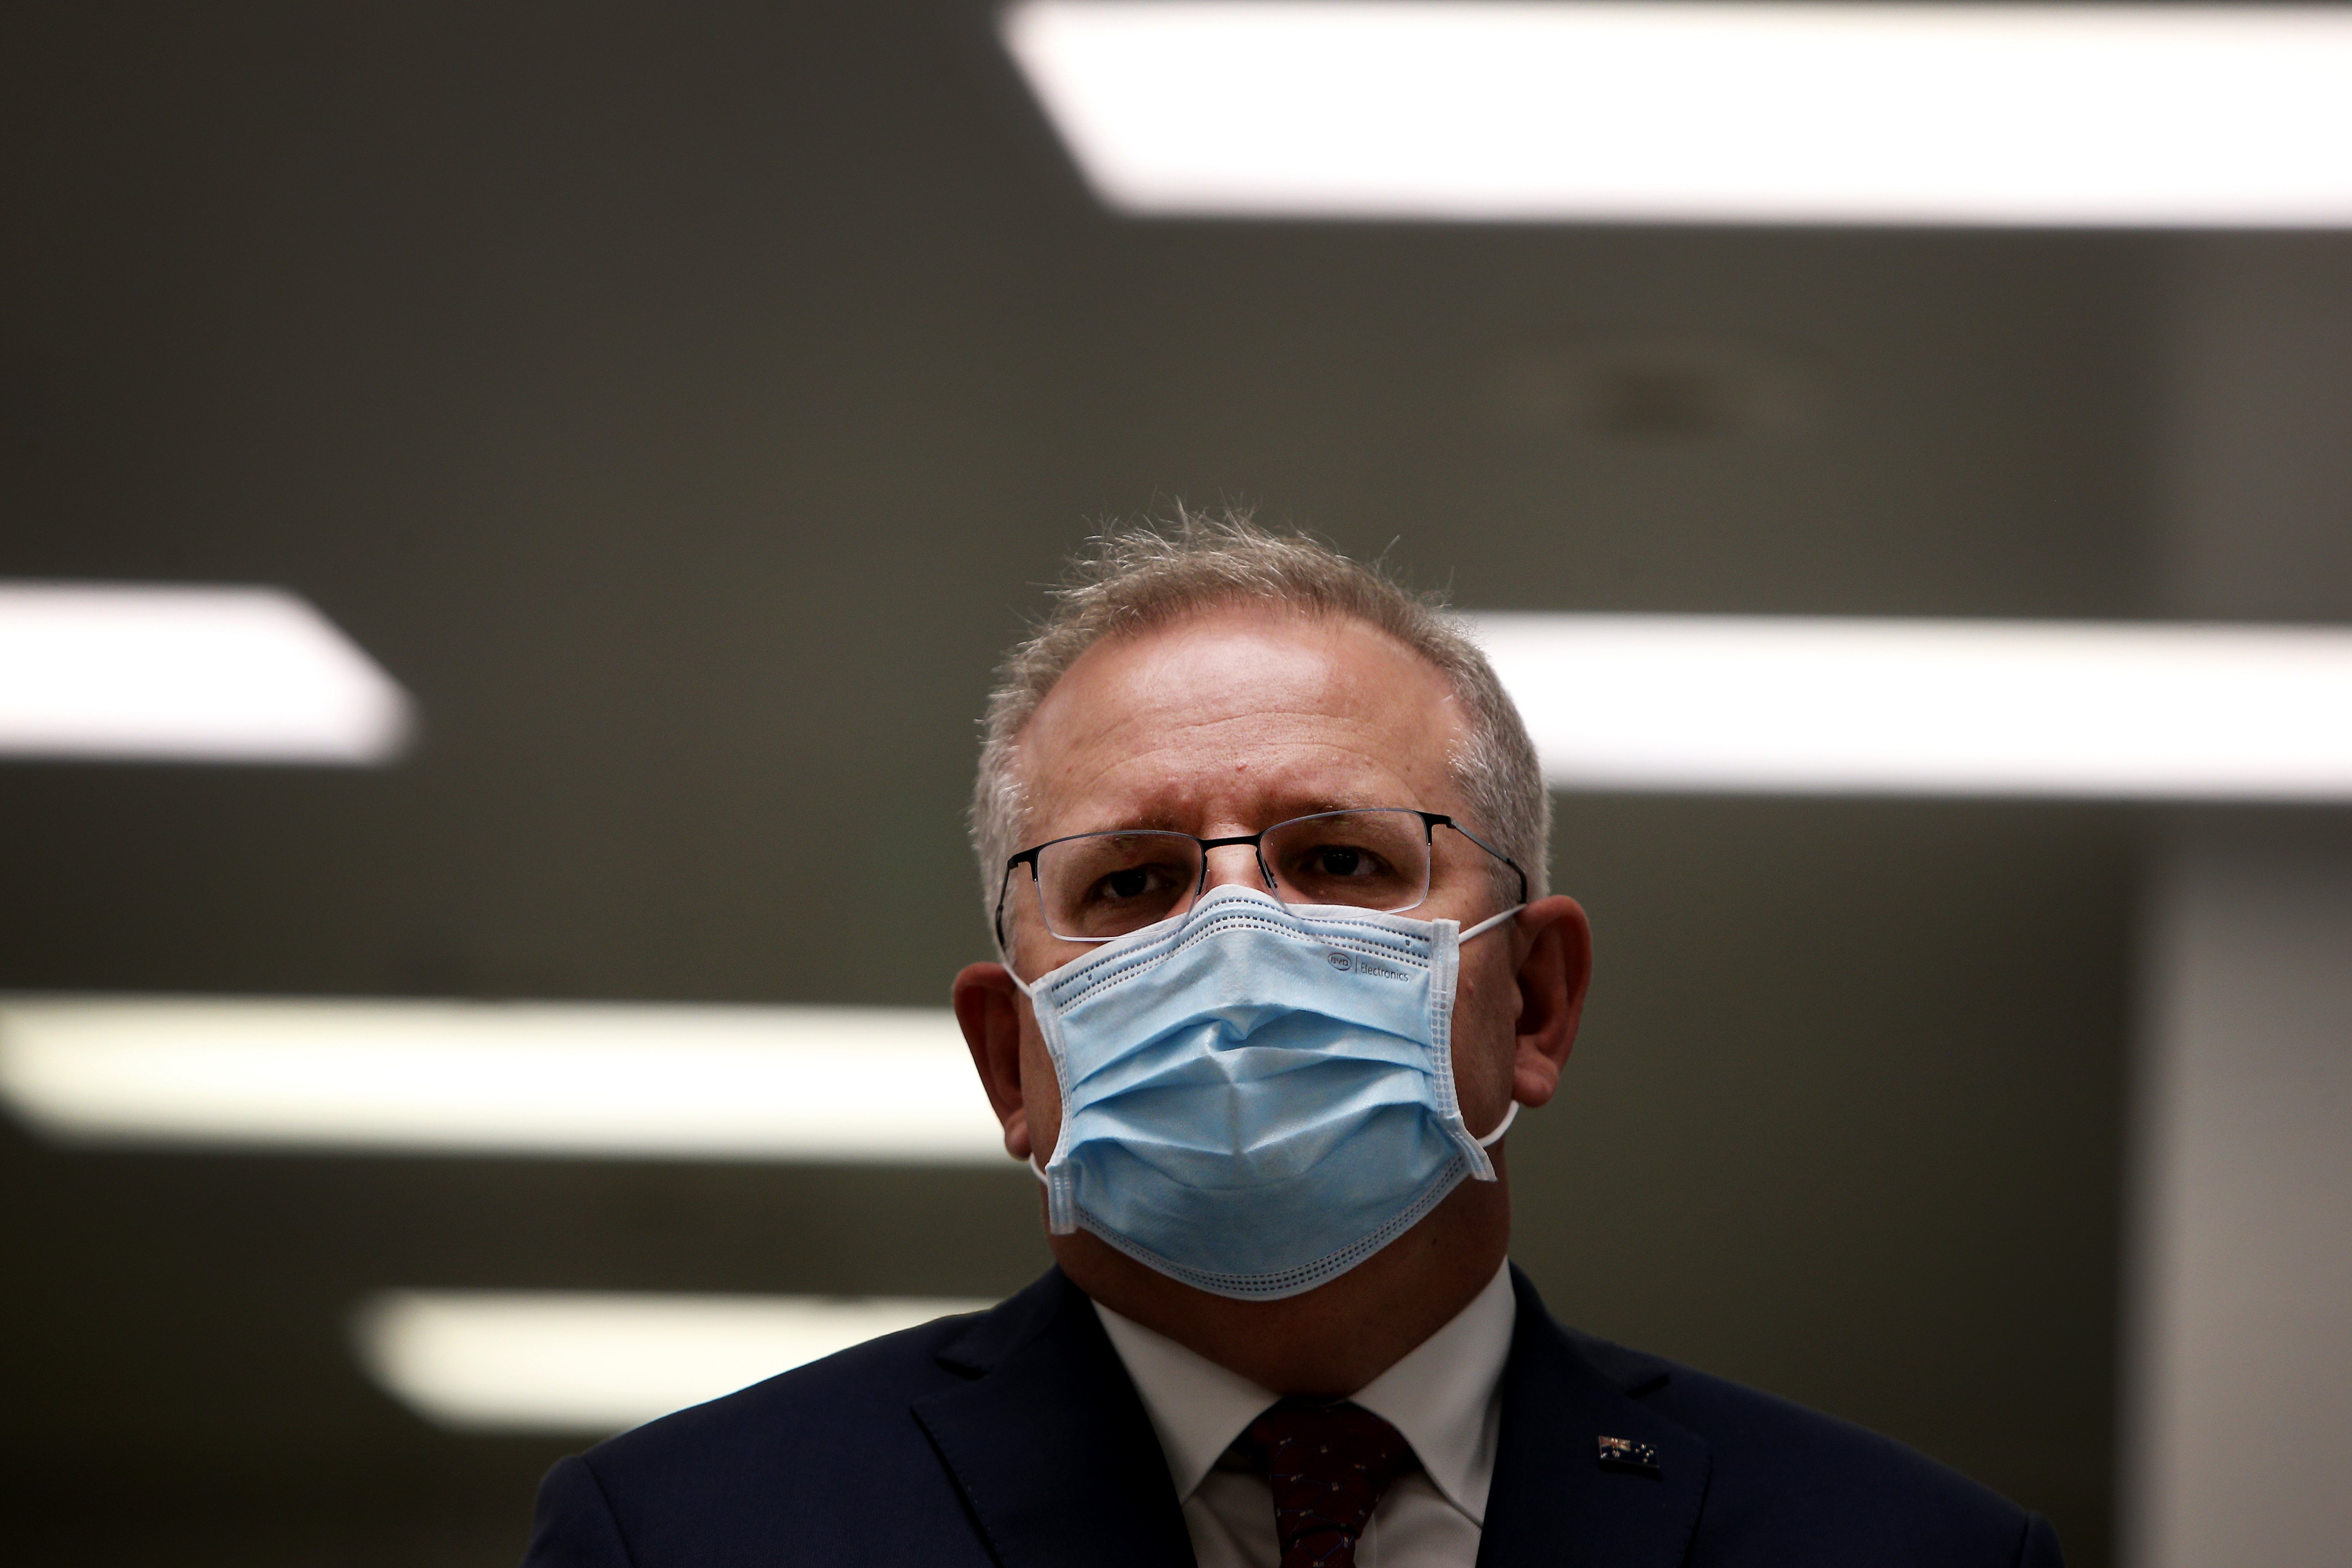 SYDNEY, AUSTRALIA - AUGUST 19: Prime Minister Scott Morrison is seen wearing a face mask during a press conference at AstraZeneca on August 19, 2020 in Sydney, Australia. The Australian government has announced an agreement with the British pharmaceutical giant AstraZeneca to secure at least 25 million doses of a COVID-19 vaccine if it passes clinical trials. The University of Oxford COVID-19 vaccine is currently in phase-three testing. If the vaccine proves to be successful, Australia will manufacture and supply vaccines and will be made available for free. The project could deliver the first vaccines by the end of this year or by early 2021. (Photo by Lisa Maree Williams/Getty Images)